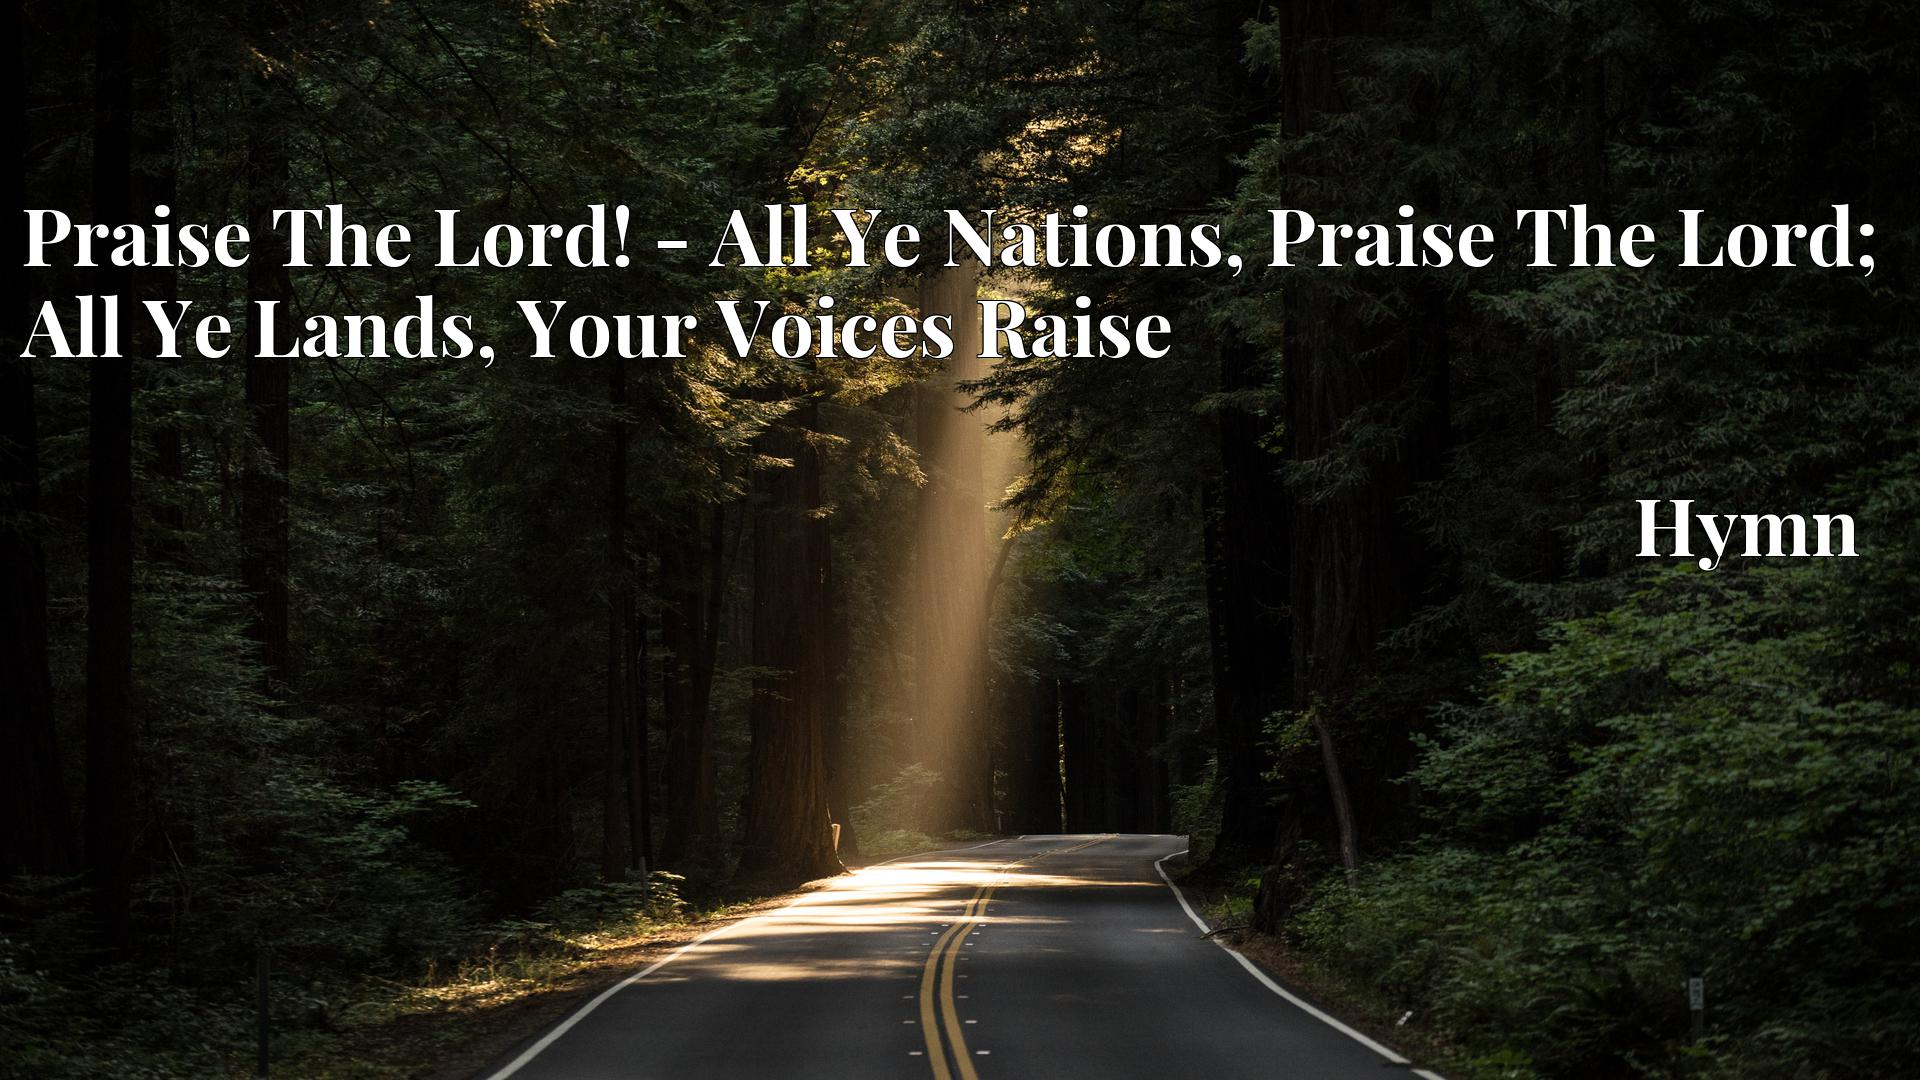 Praise The Lord! - All Ye Nations, Praise The Lord; All Ye Lands, Your Voices Raise - Hymn